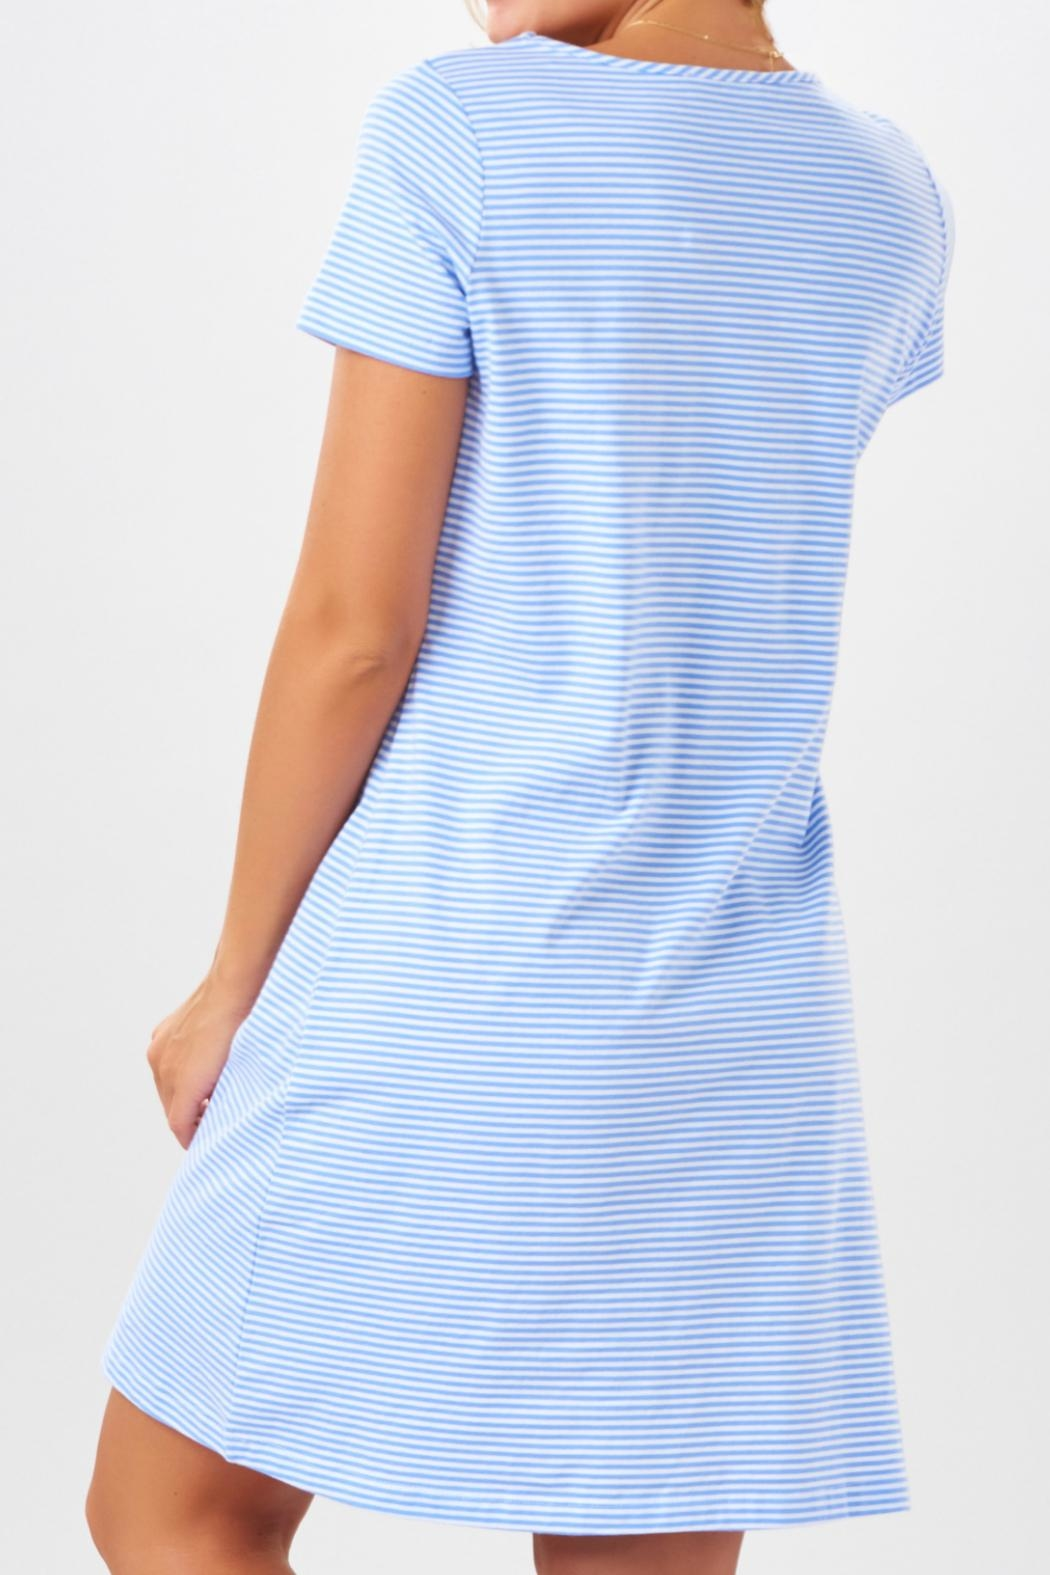 Charlie Paige Striped Knit Dress - Front Full Image